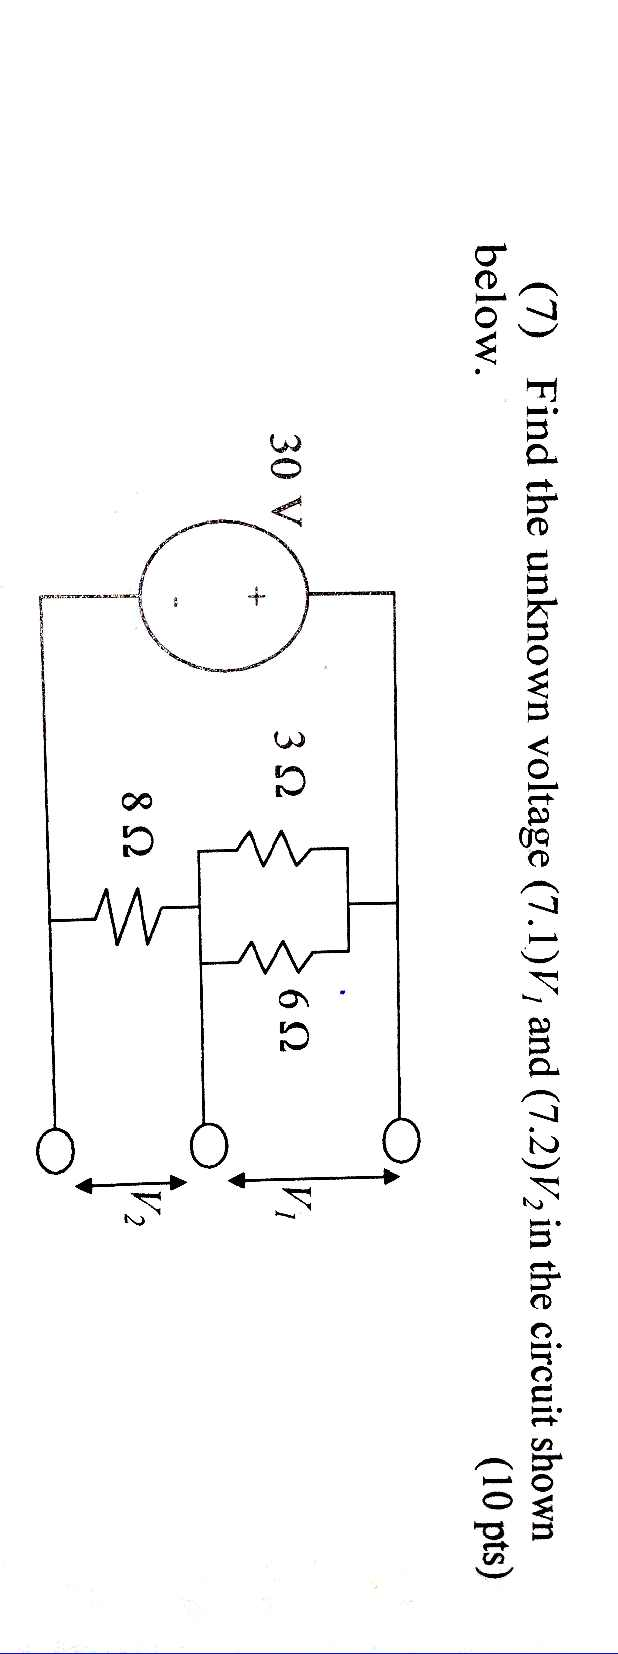 Find the unknown voltage (1 .1)V1 and (7.2)V2 in t